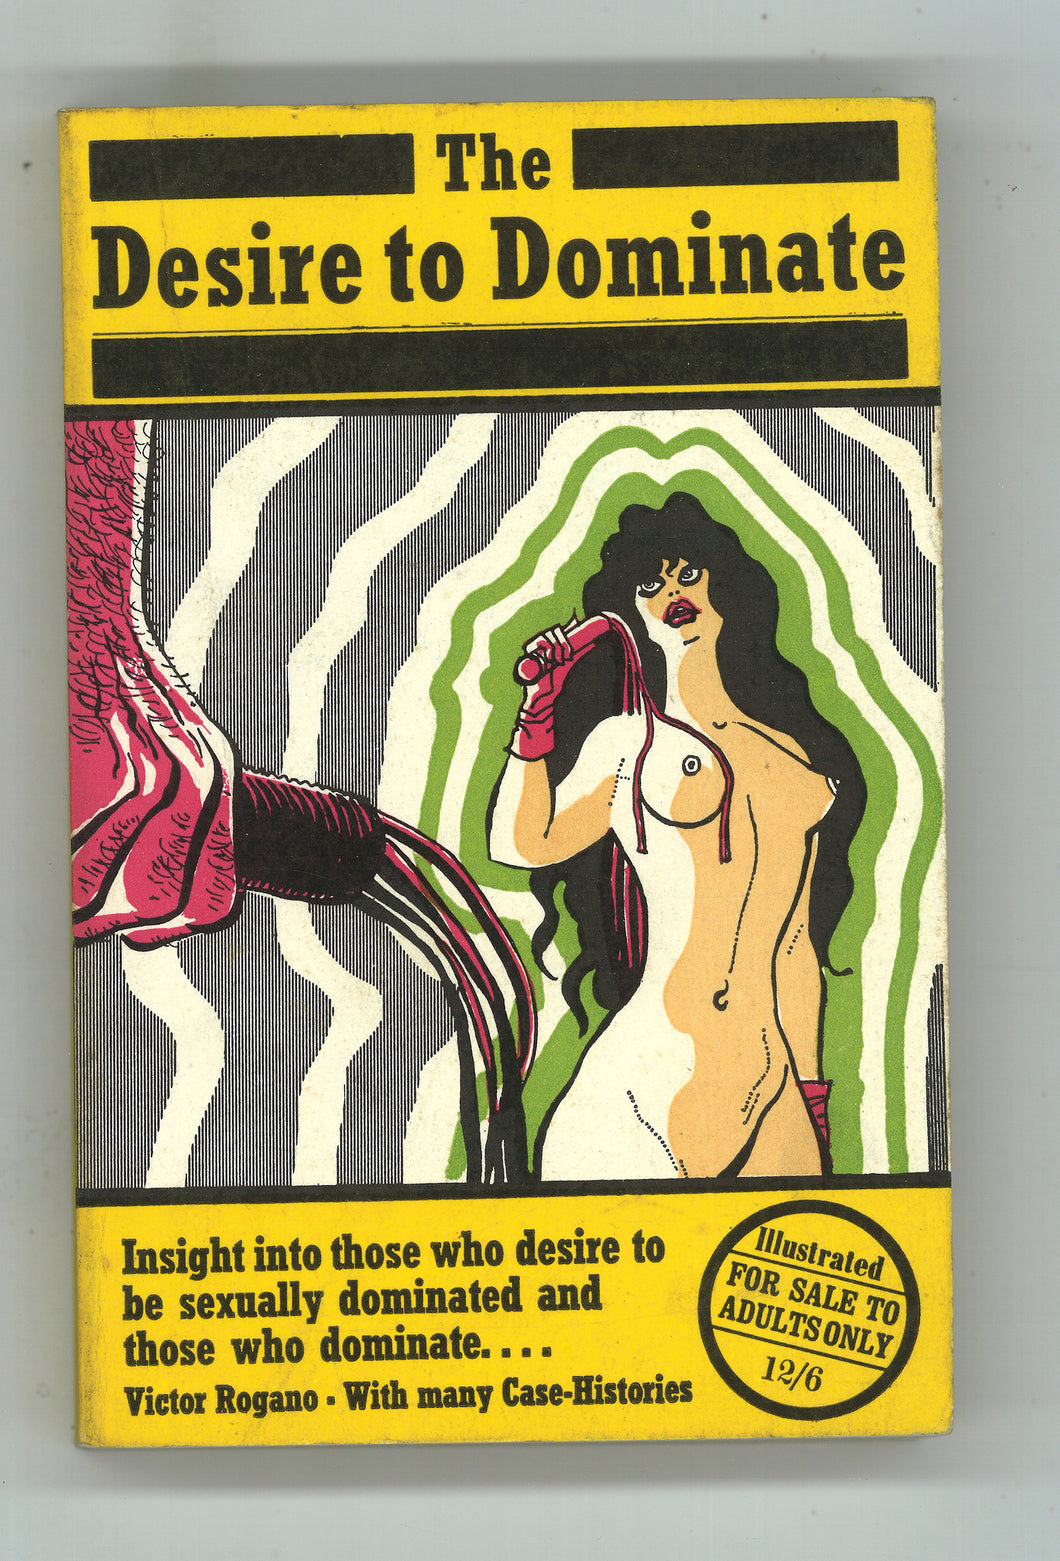 The Desire to Dominate